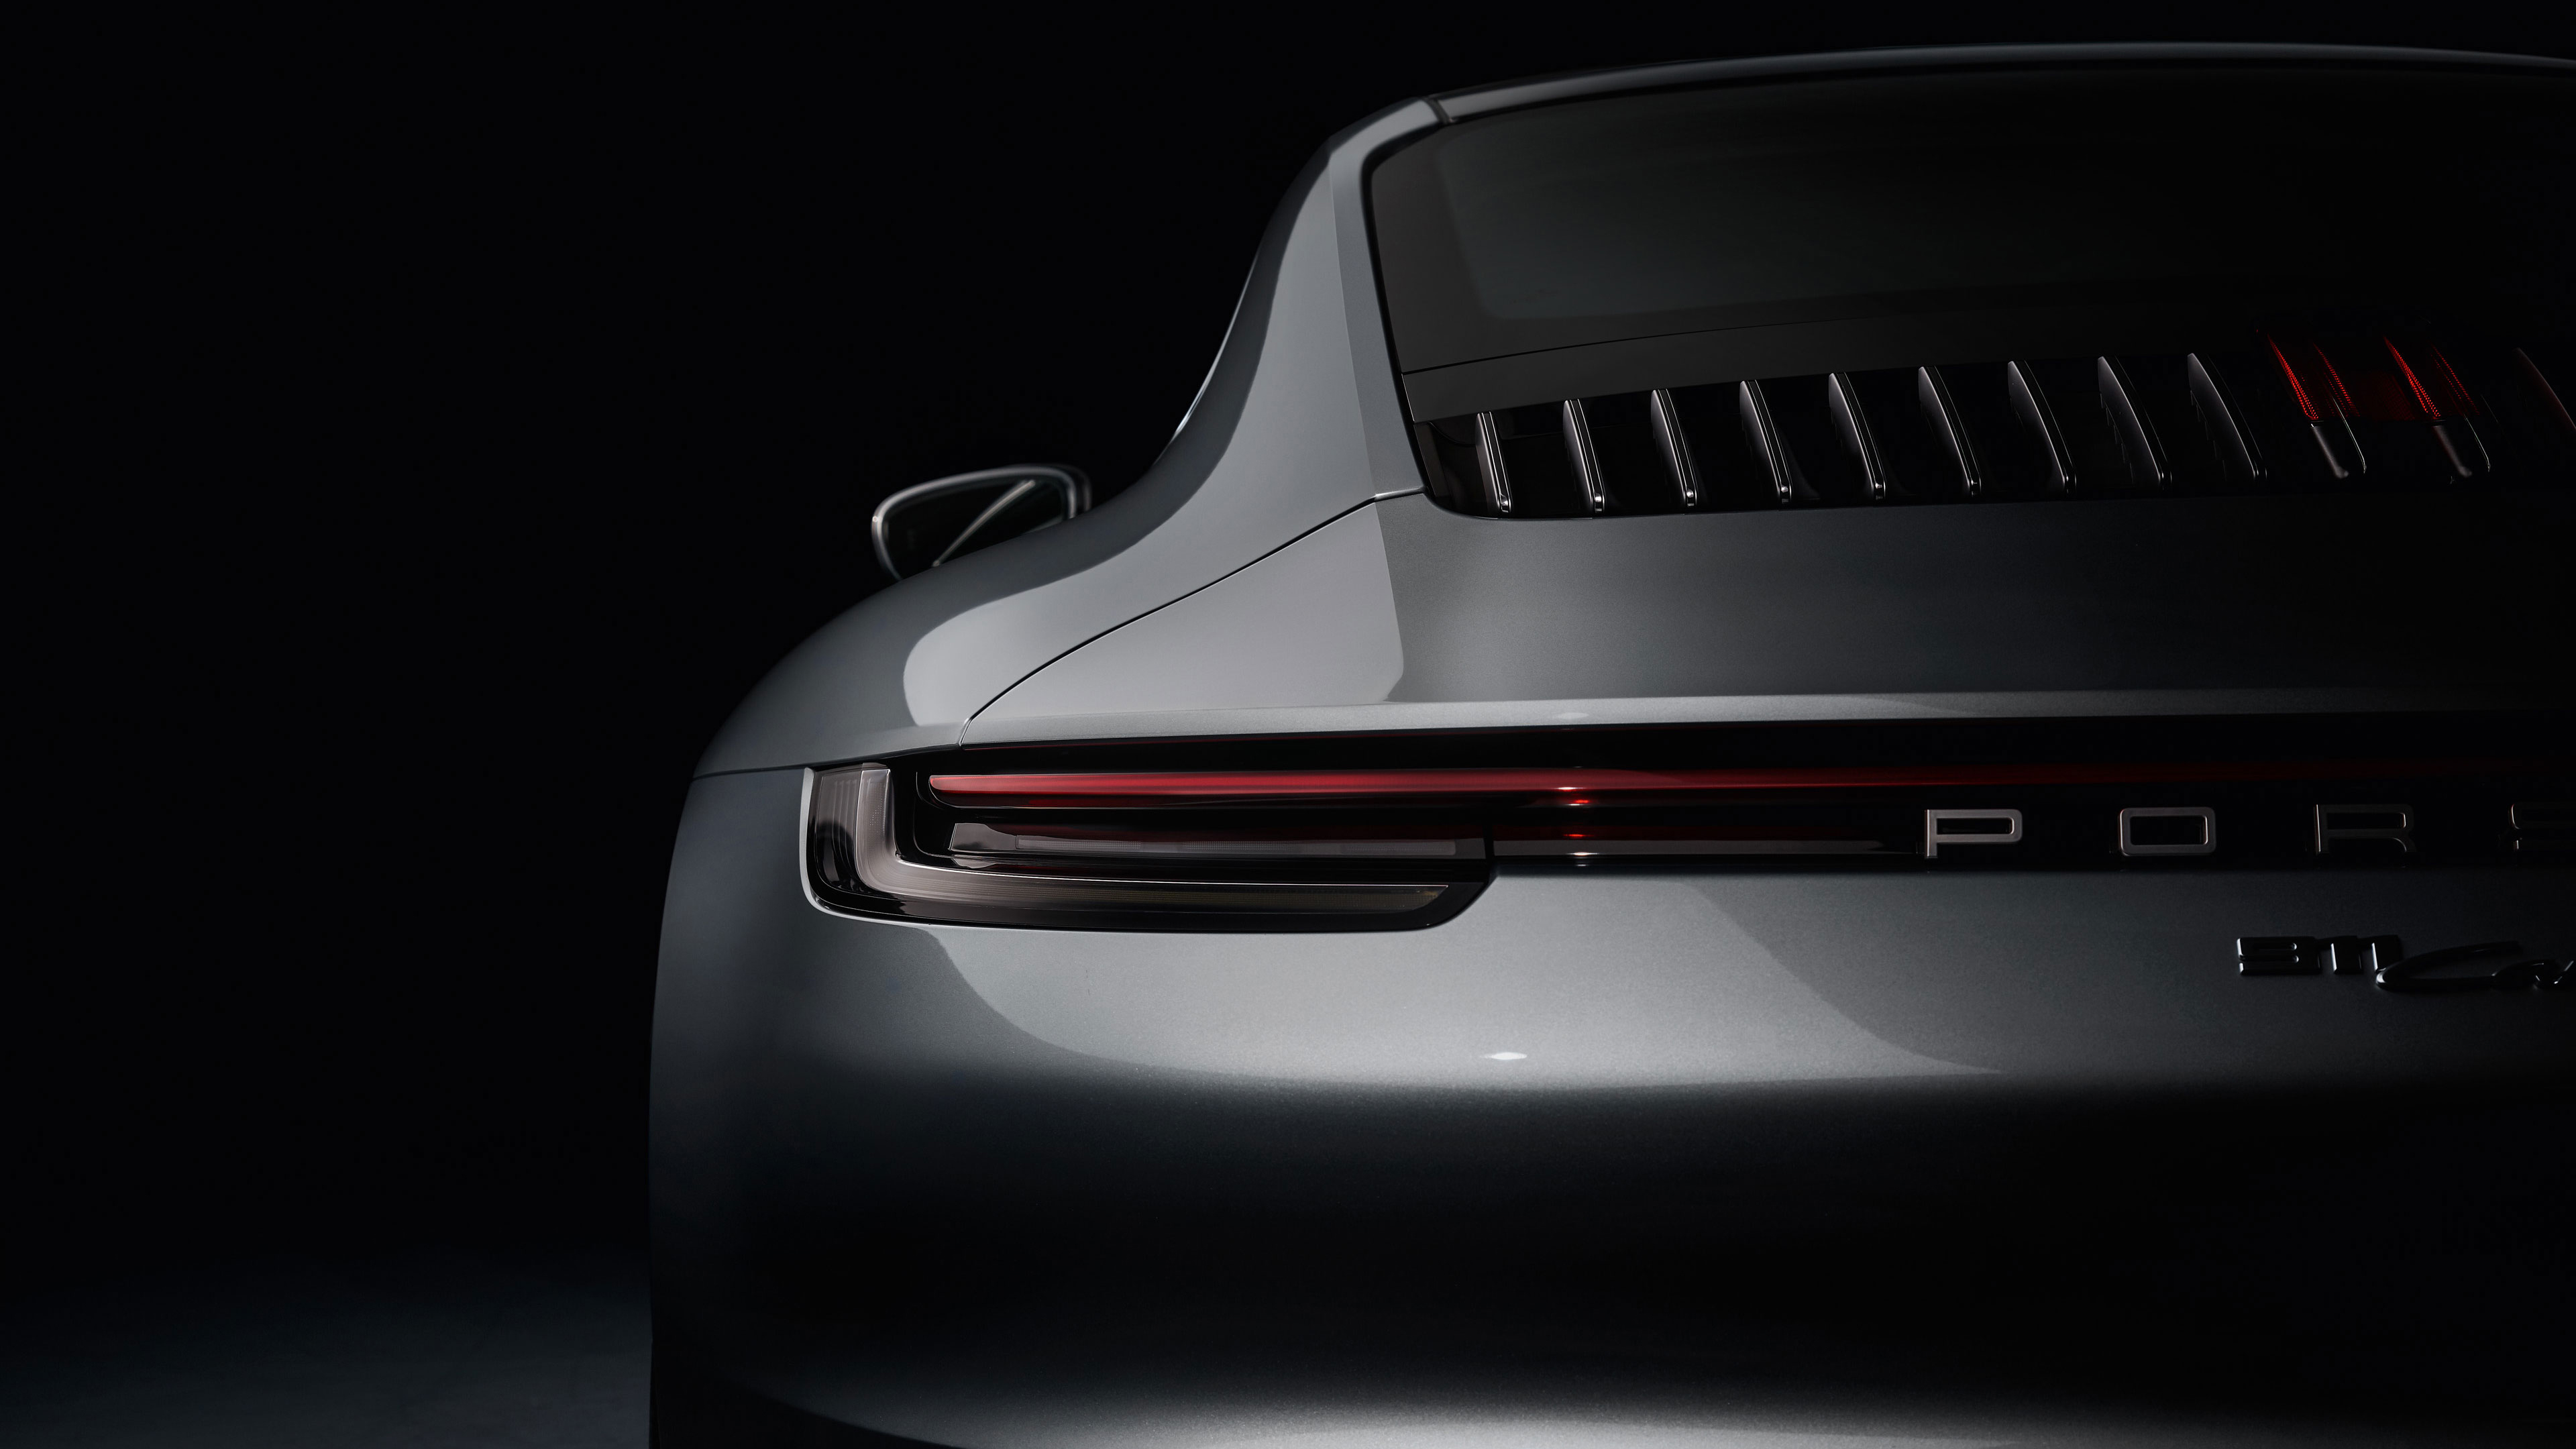 Porsche 911 Carrera S 2019 4k 4 Wallpaper Hd Car